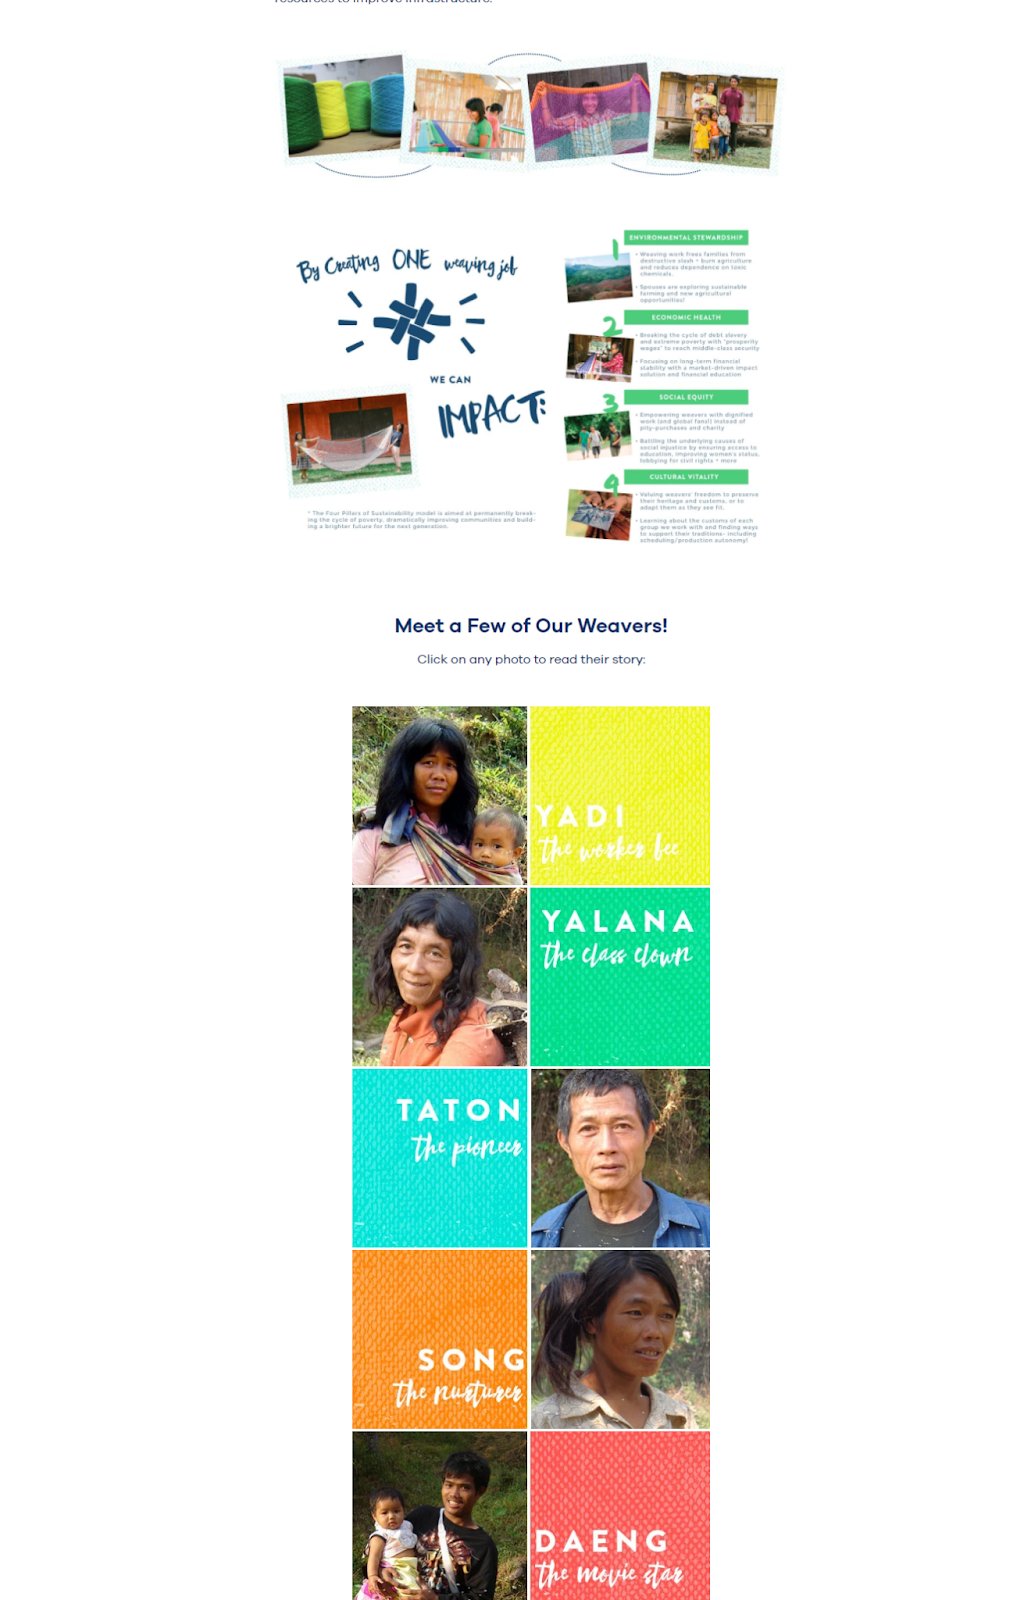 example of community building programs from yellow leaf